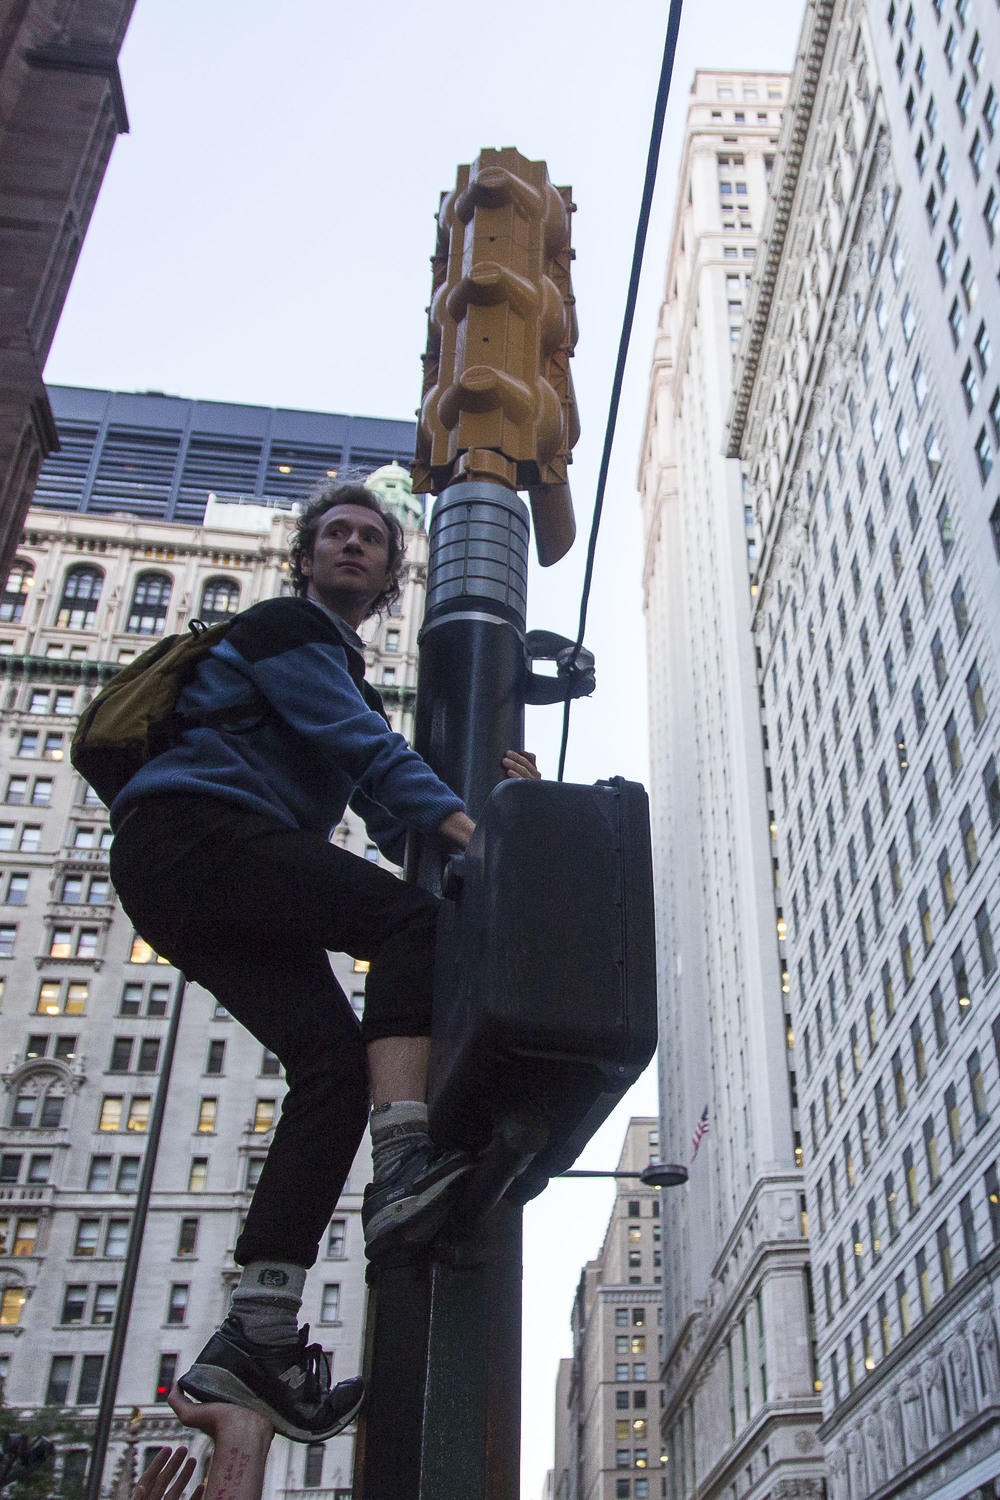 Against the wishes of the NYPD, a protestor scales a traffic signal for a better view.